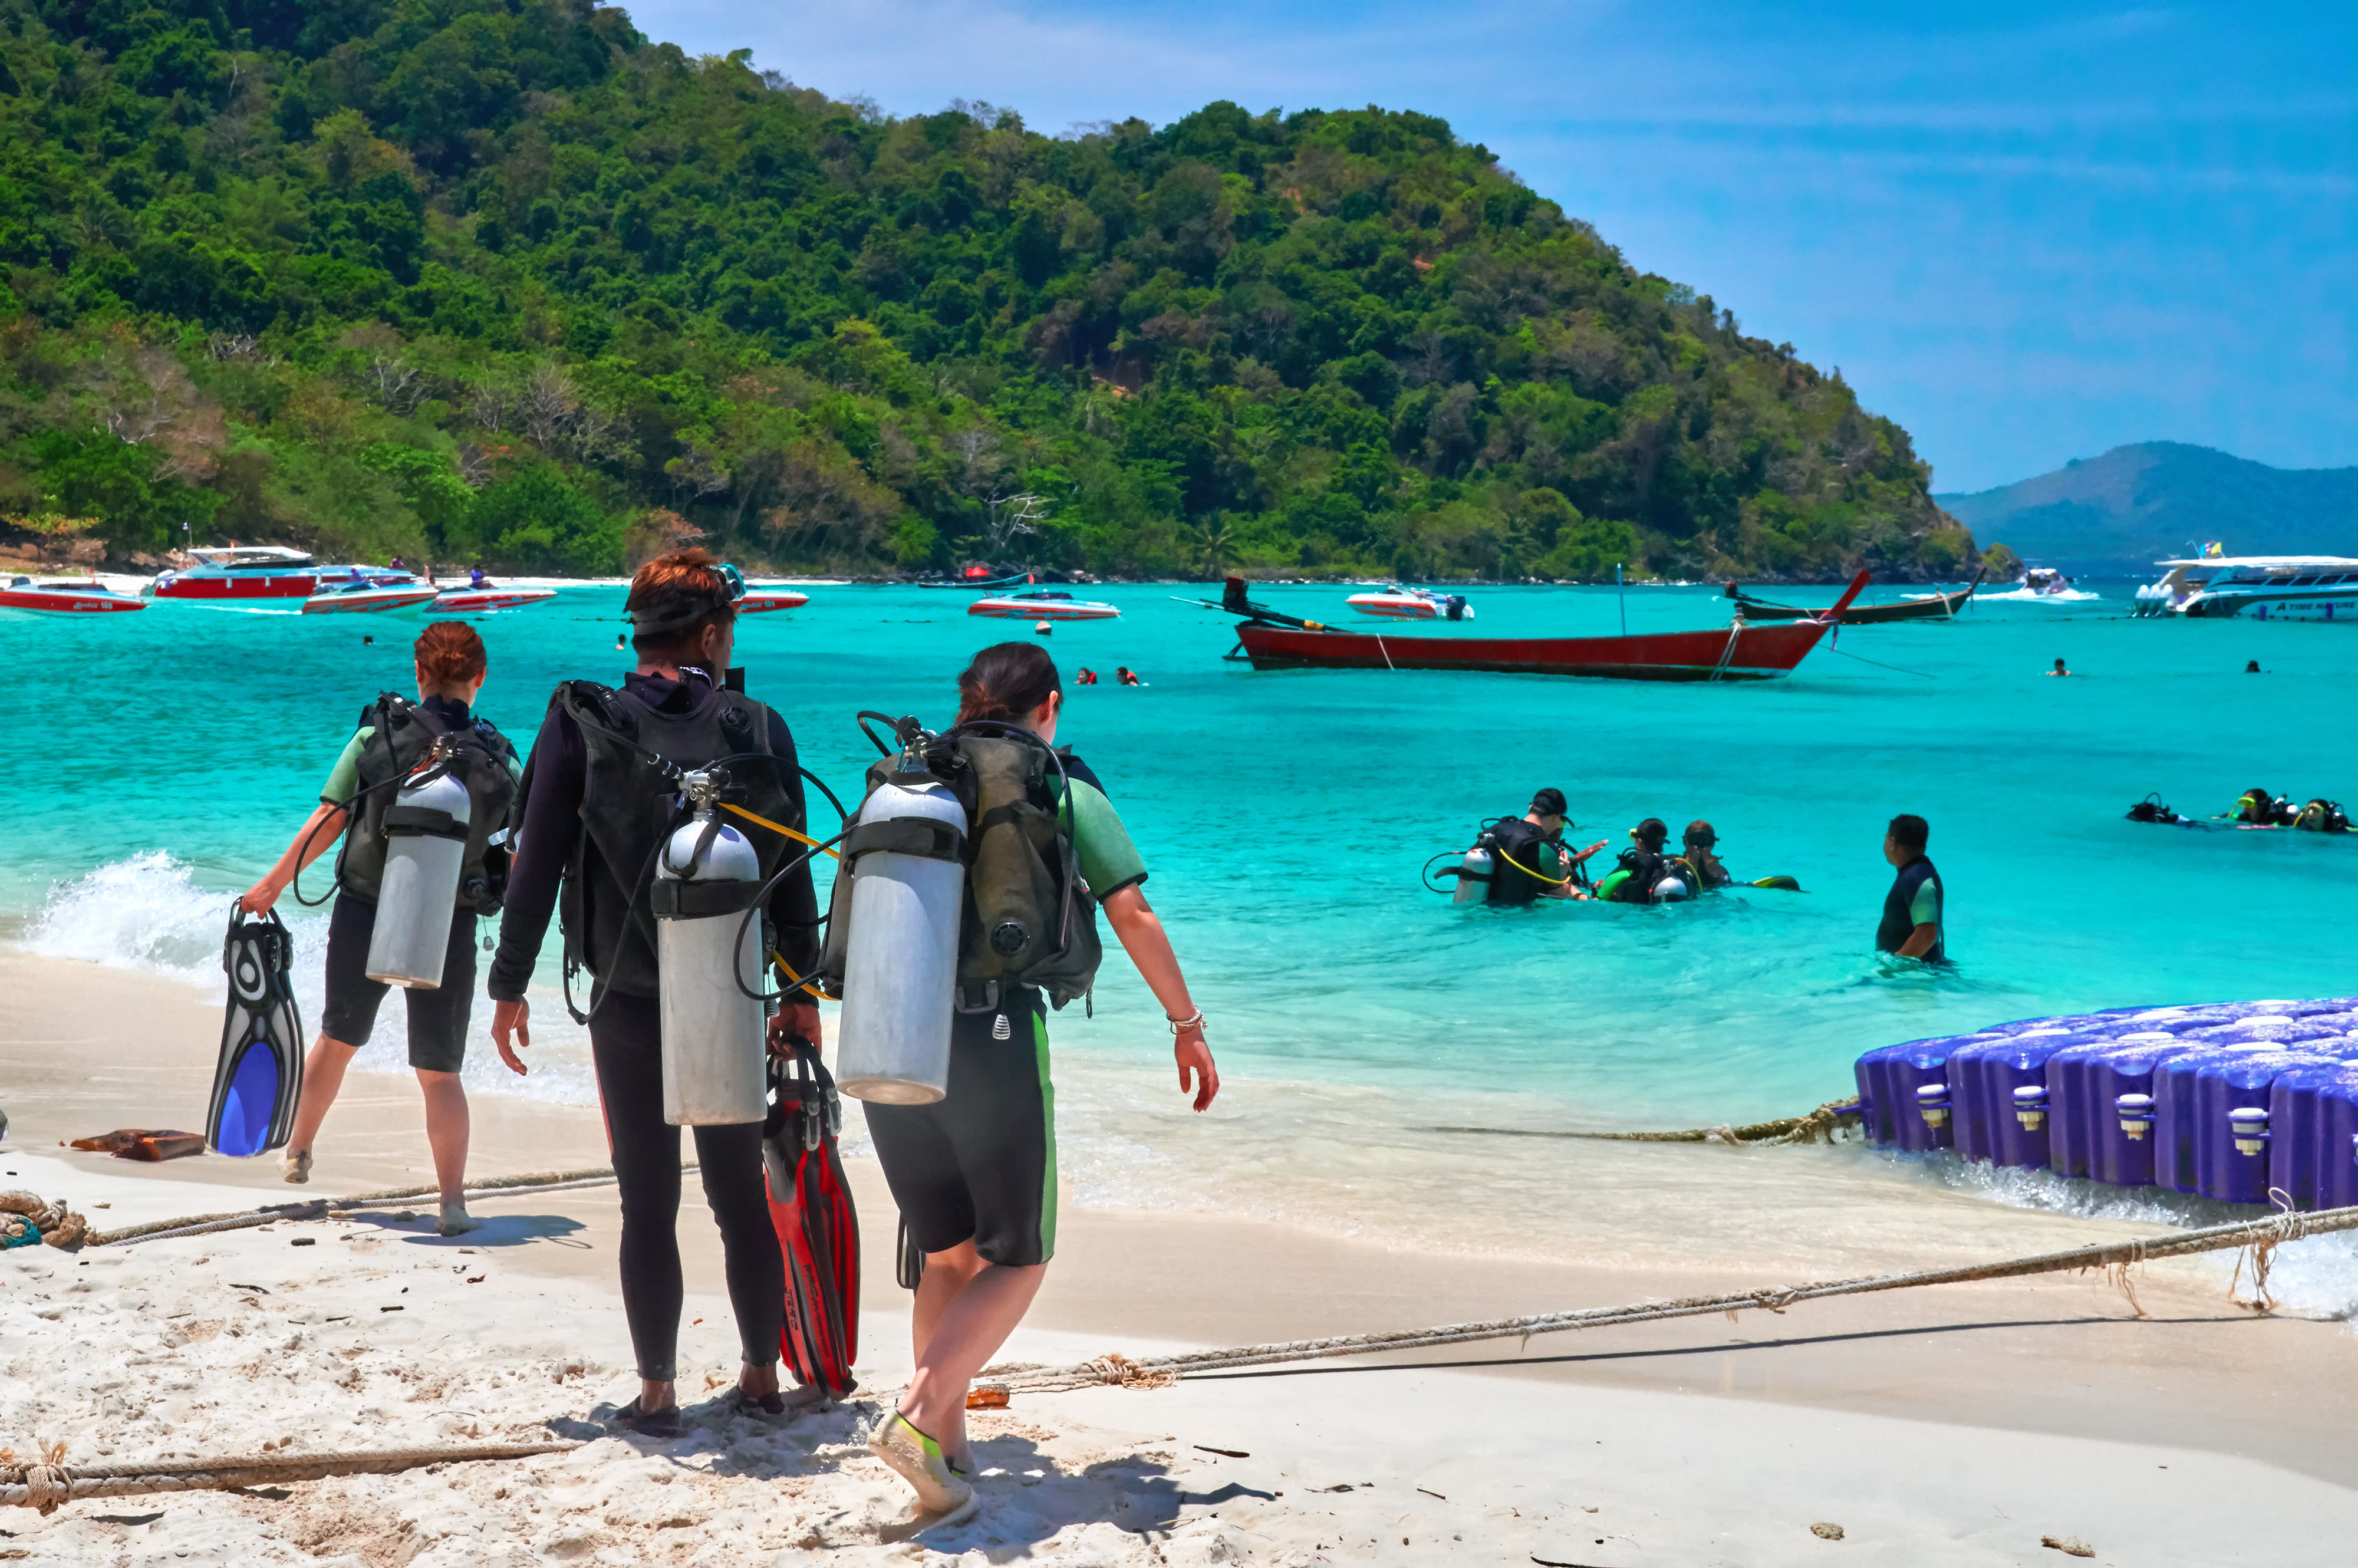 Scuba divers on white sand beach walking towards turquoise bay with divers learning to dive in shallow water.